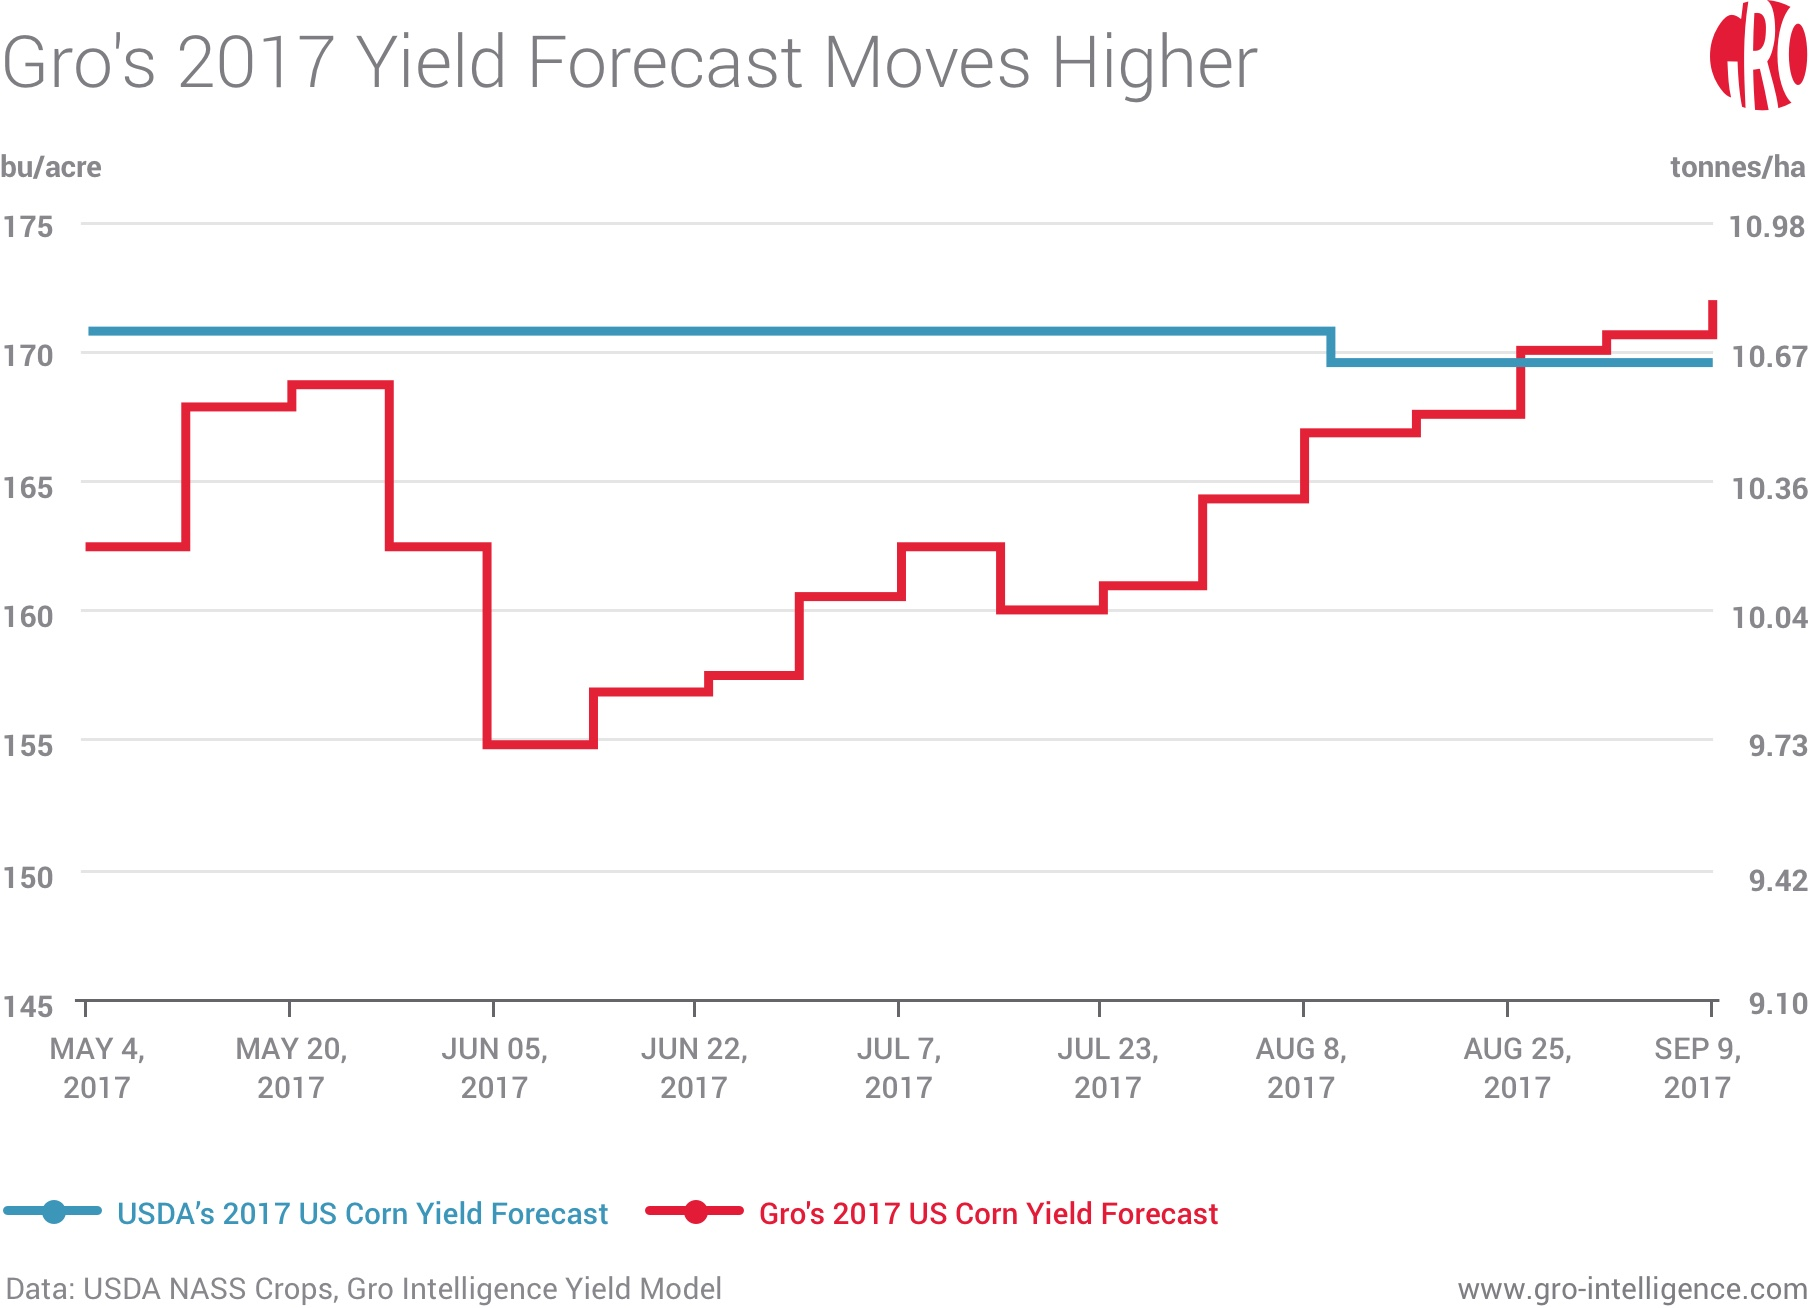 Gro's 2017 Yield Forecast Moves Higher